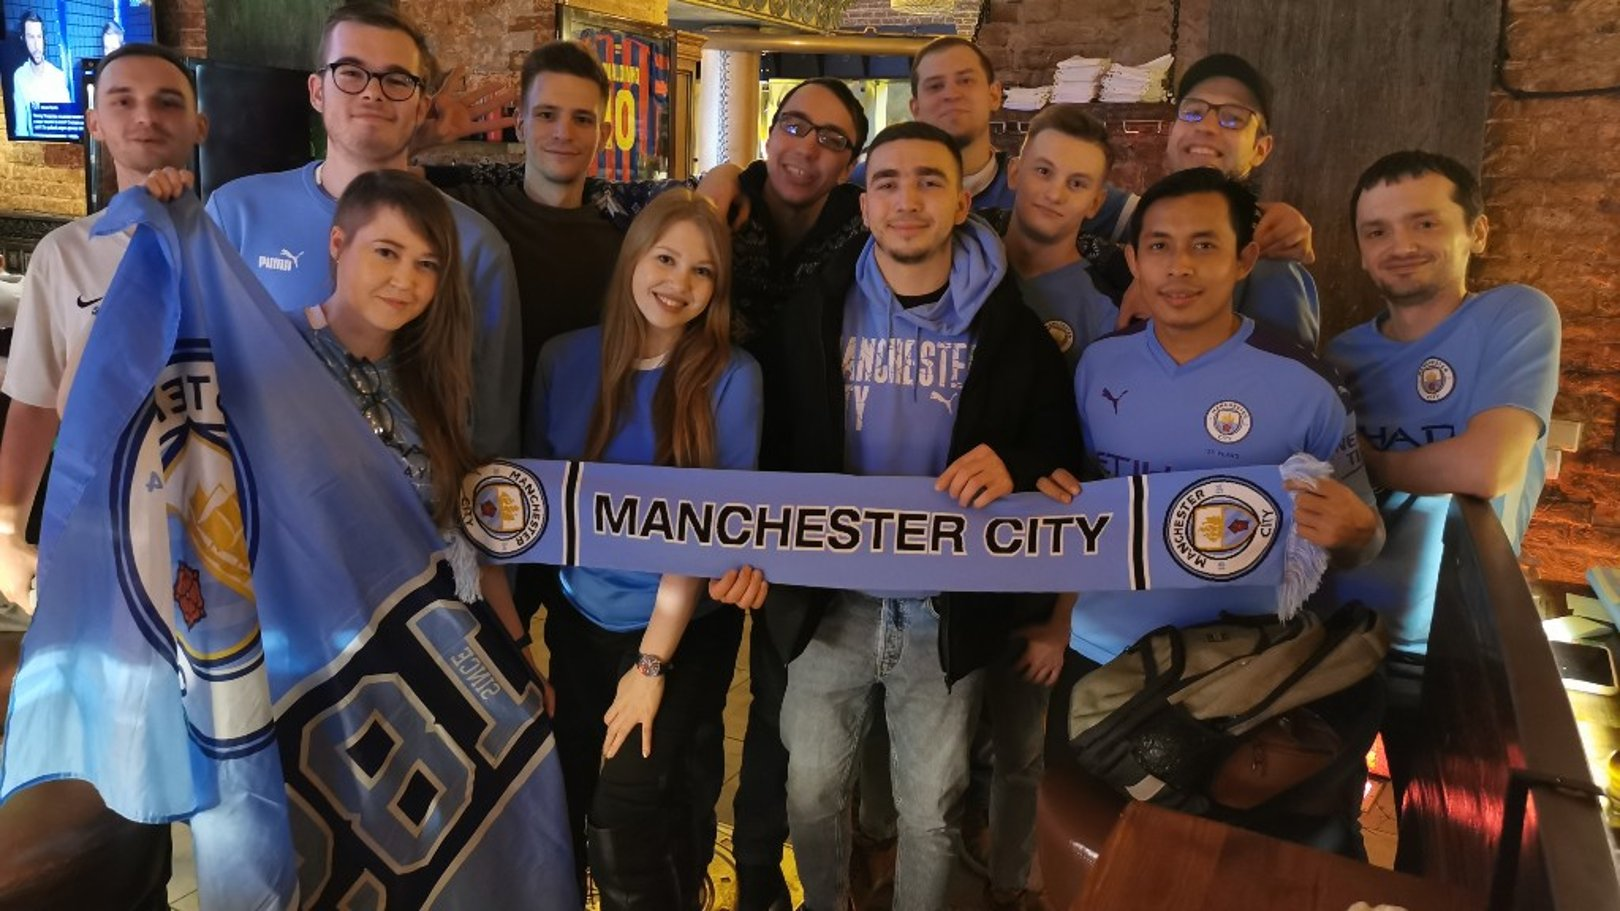 Moscow Official Supporters Club branch continues to thrive